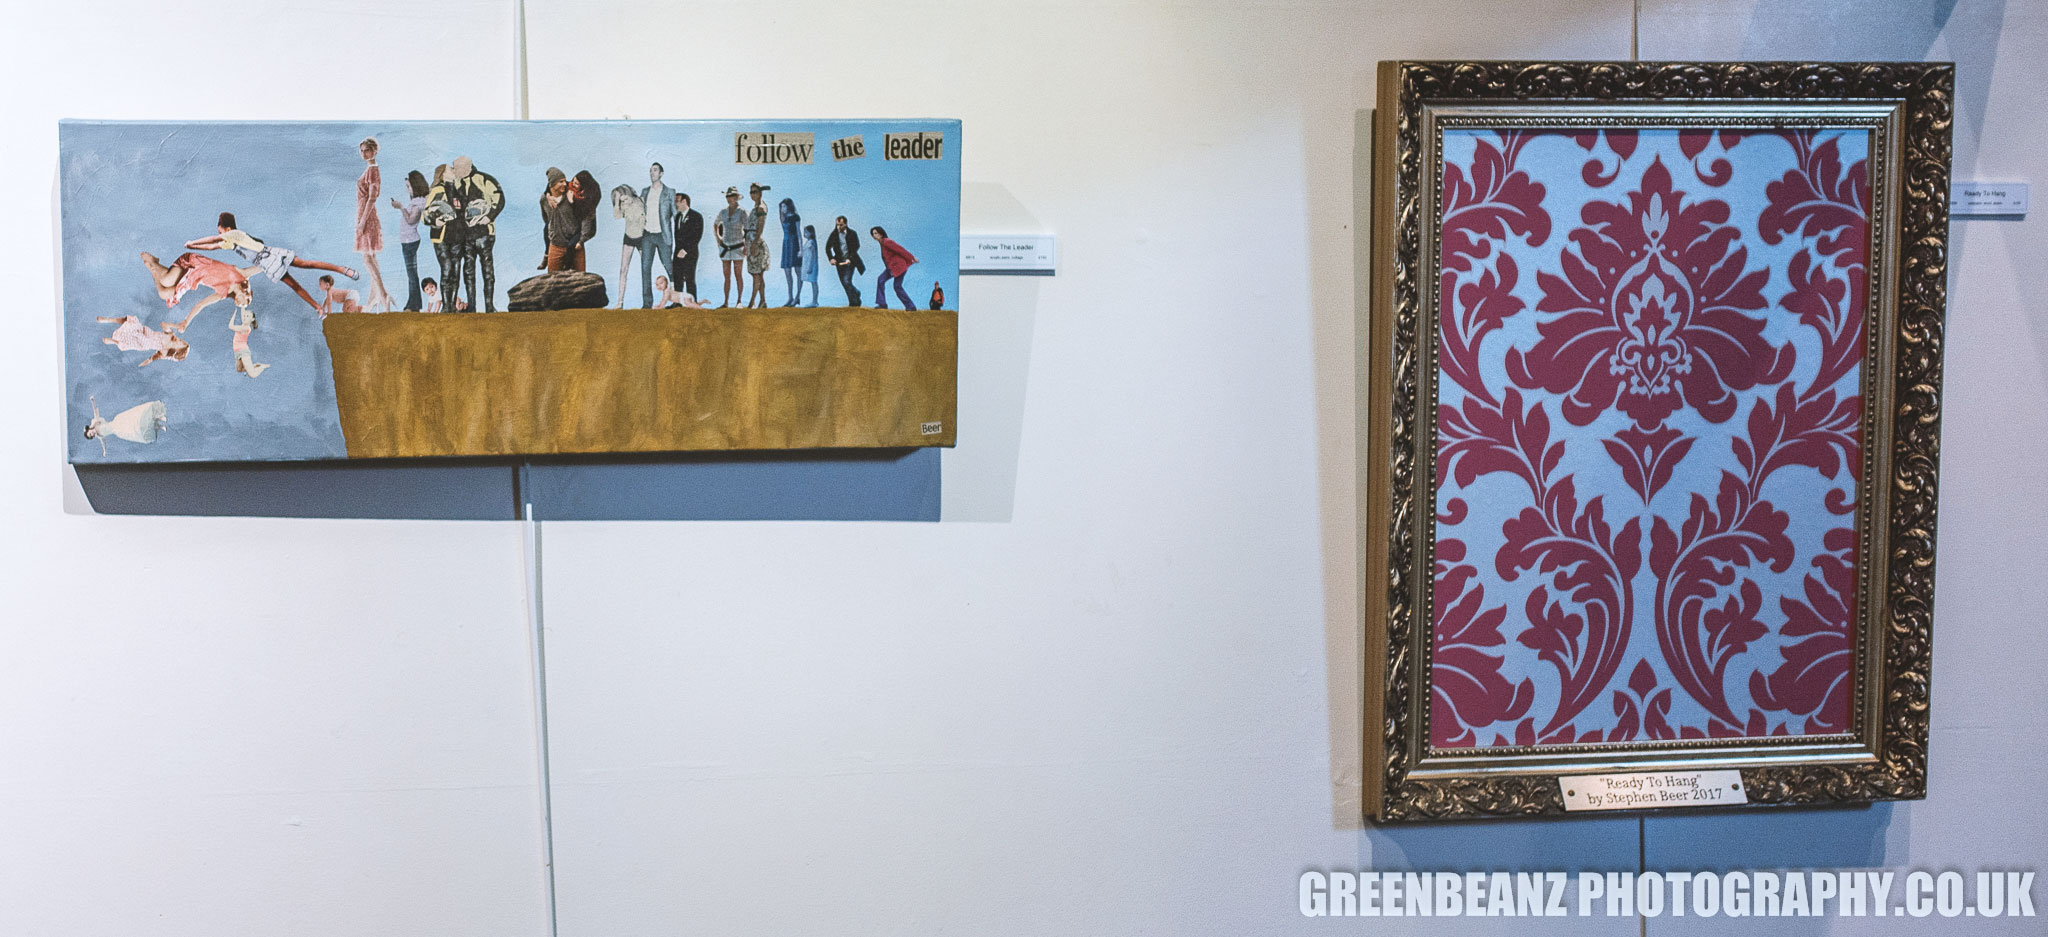 Stephen Beer's 'Follow the leader' and 'Ready to hang' at Tavistock Wharf